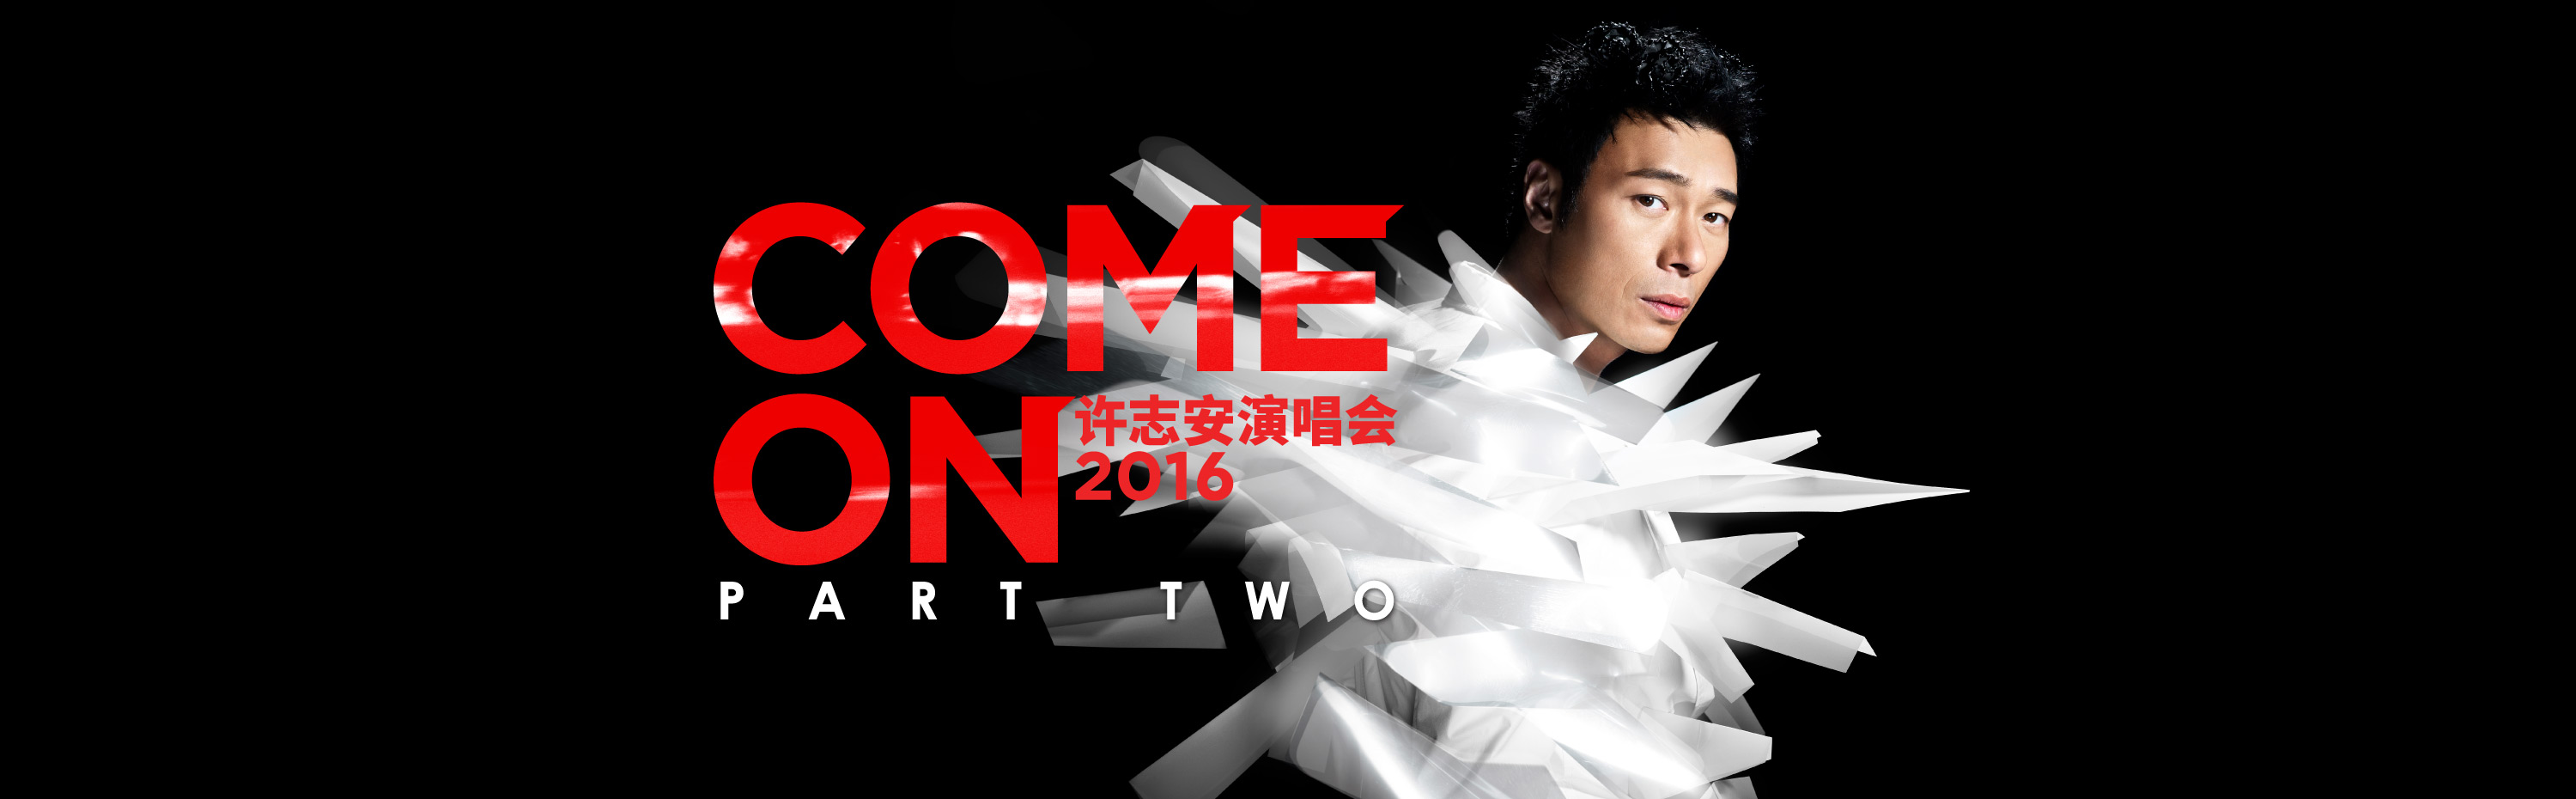 Andy Hui COME ON: PART TWO Live 2016 Macao